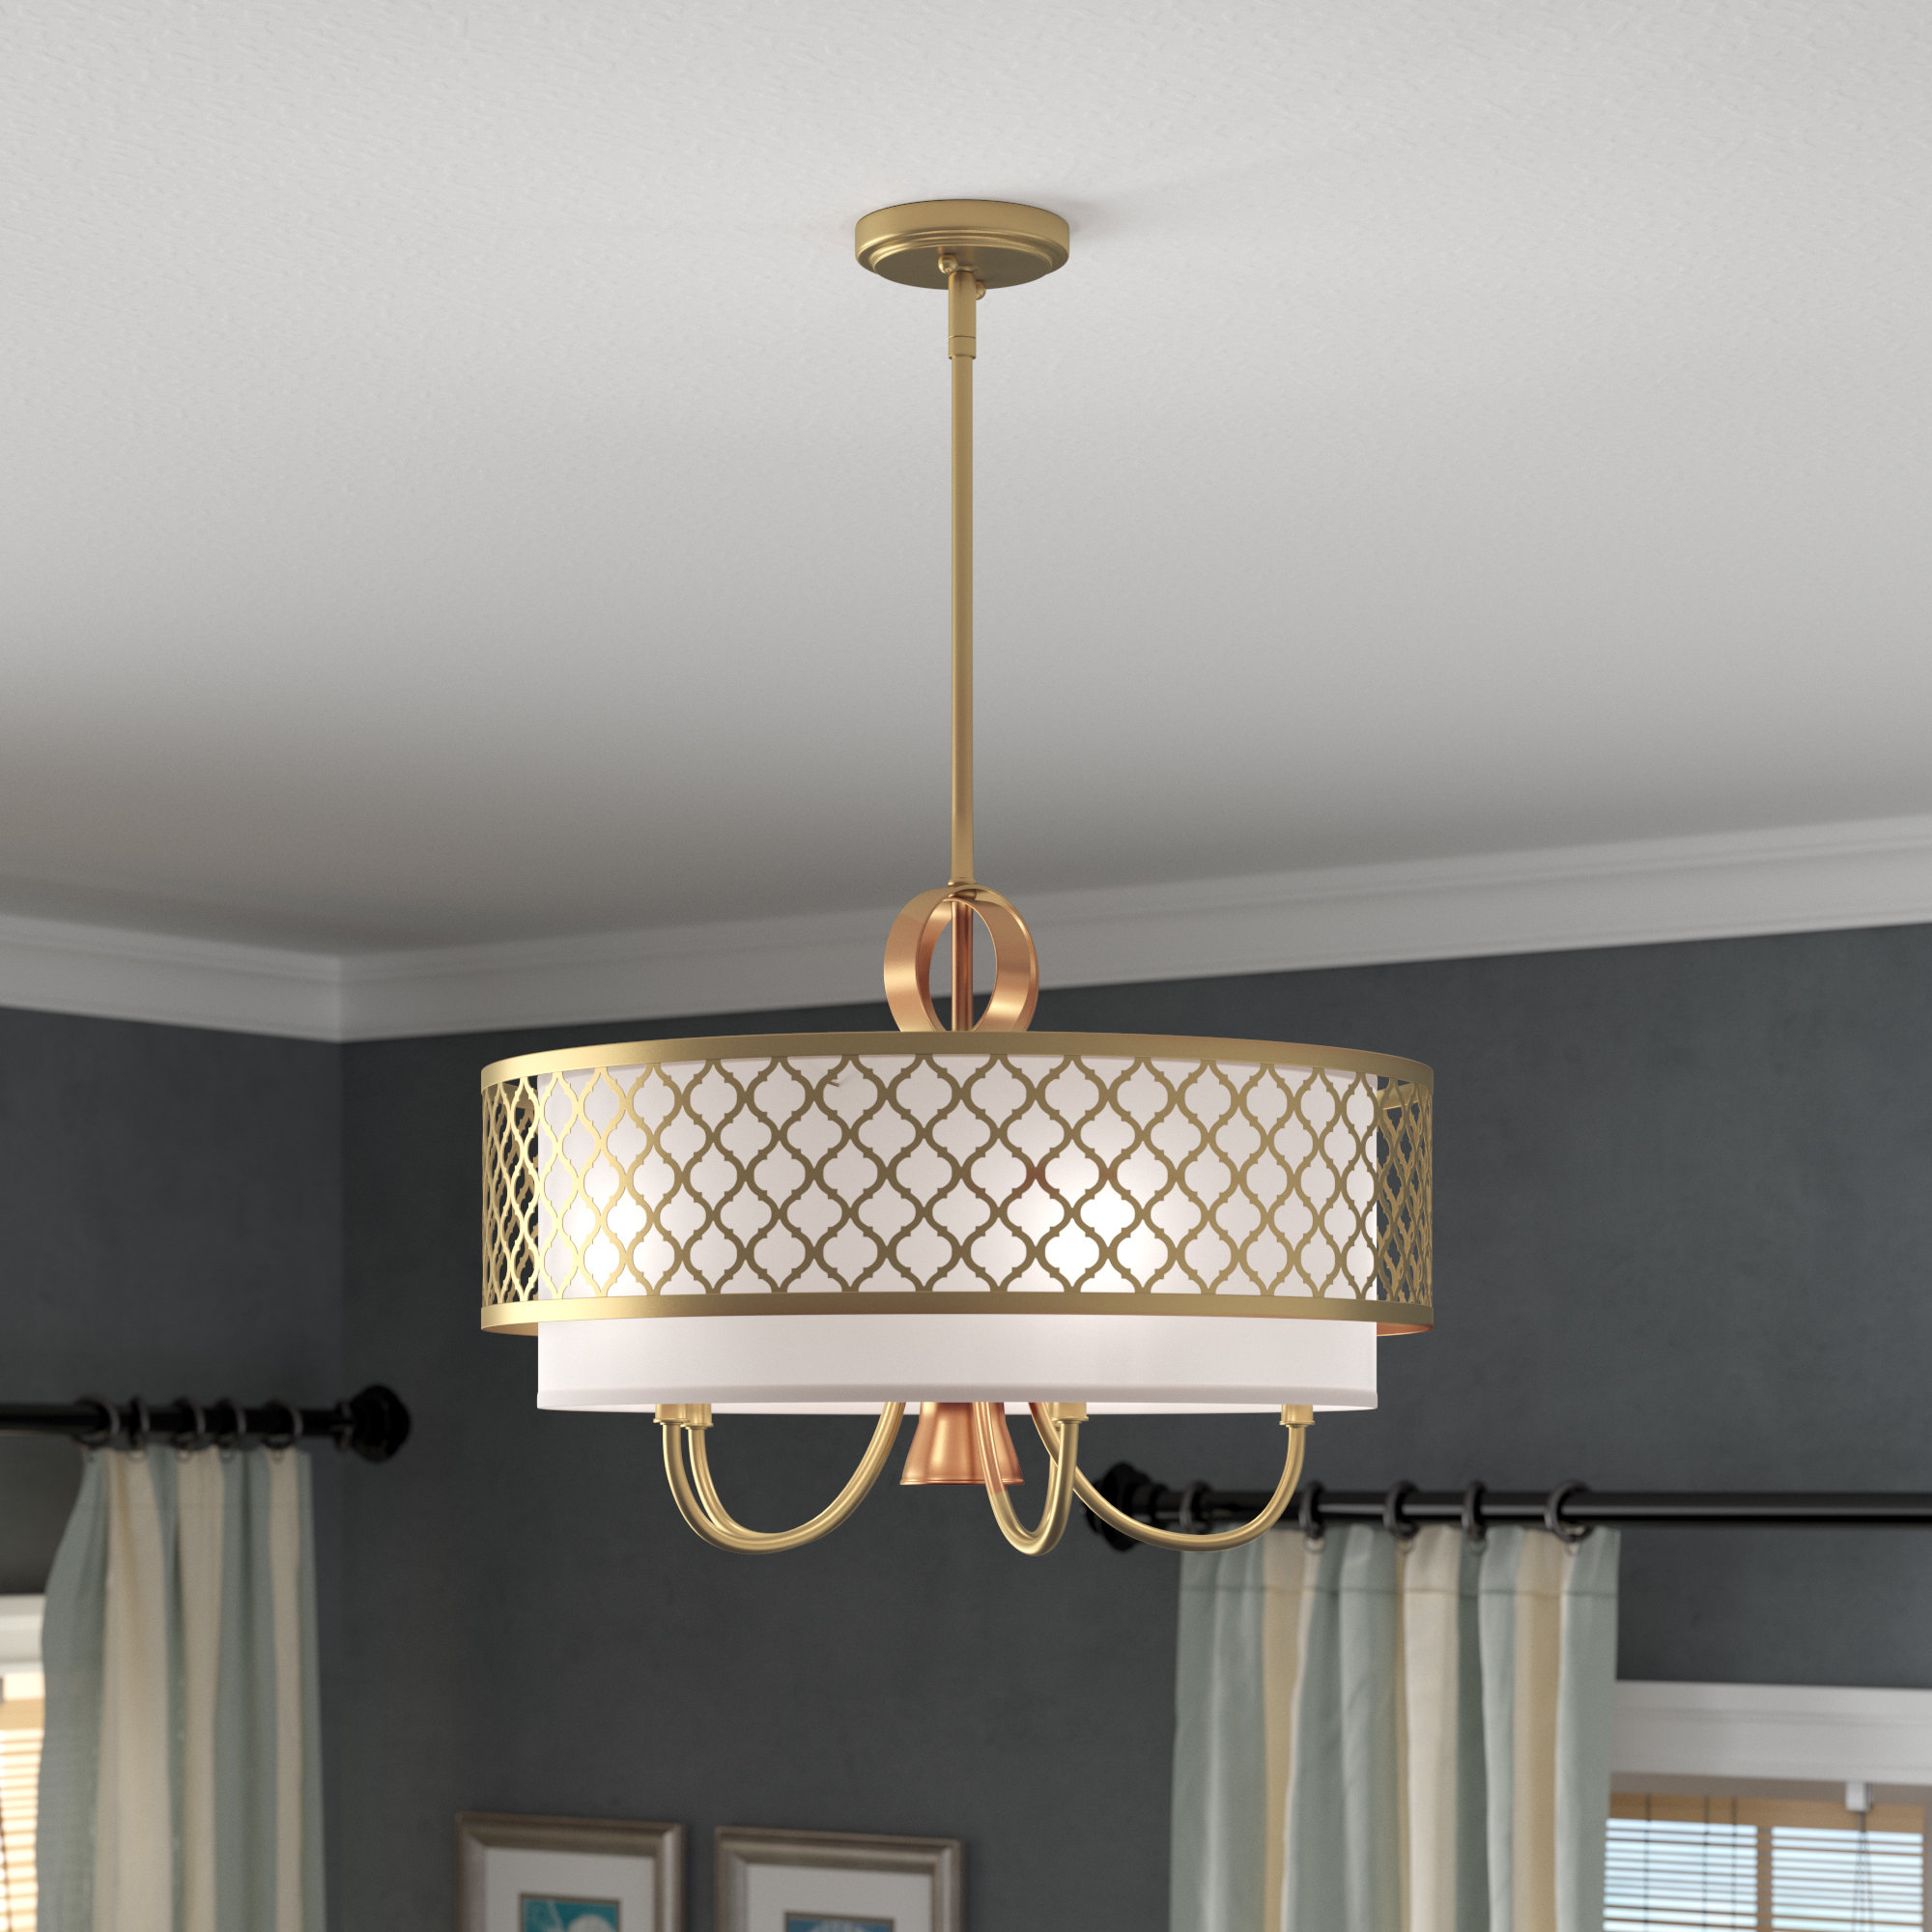 Abel 5 Light Drum Chandeliers With Regard To Fashionable Tymvou 5 Light Drum Chandelier (View 9 of 25)